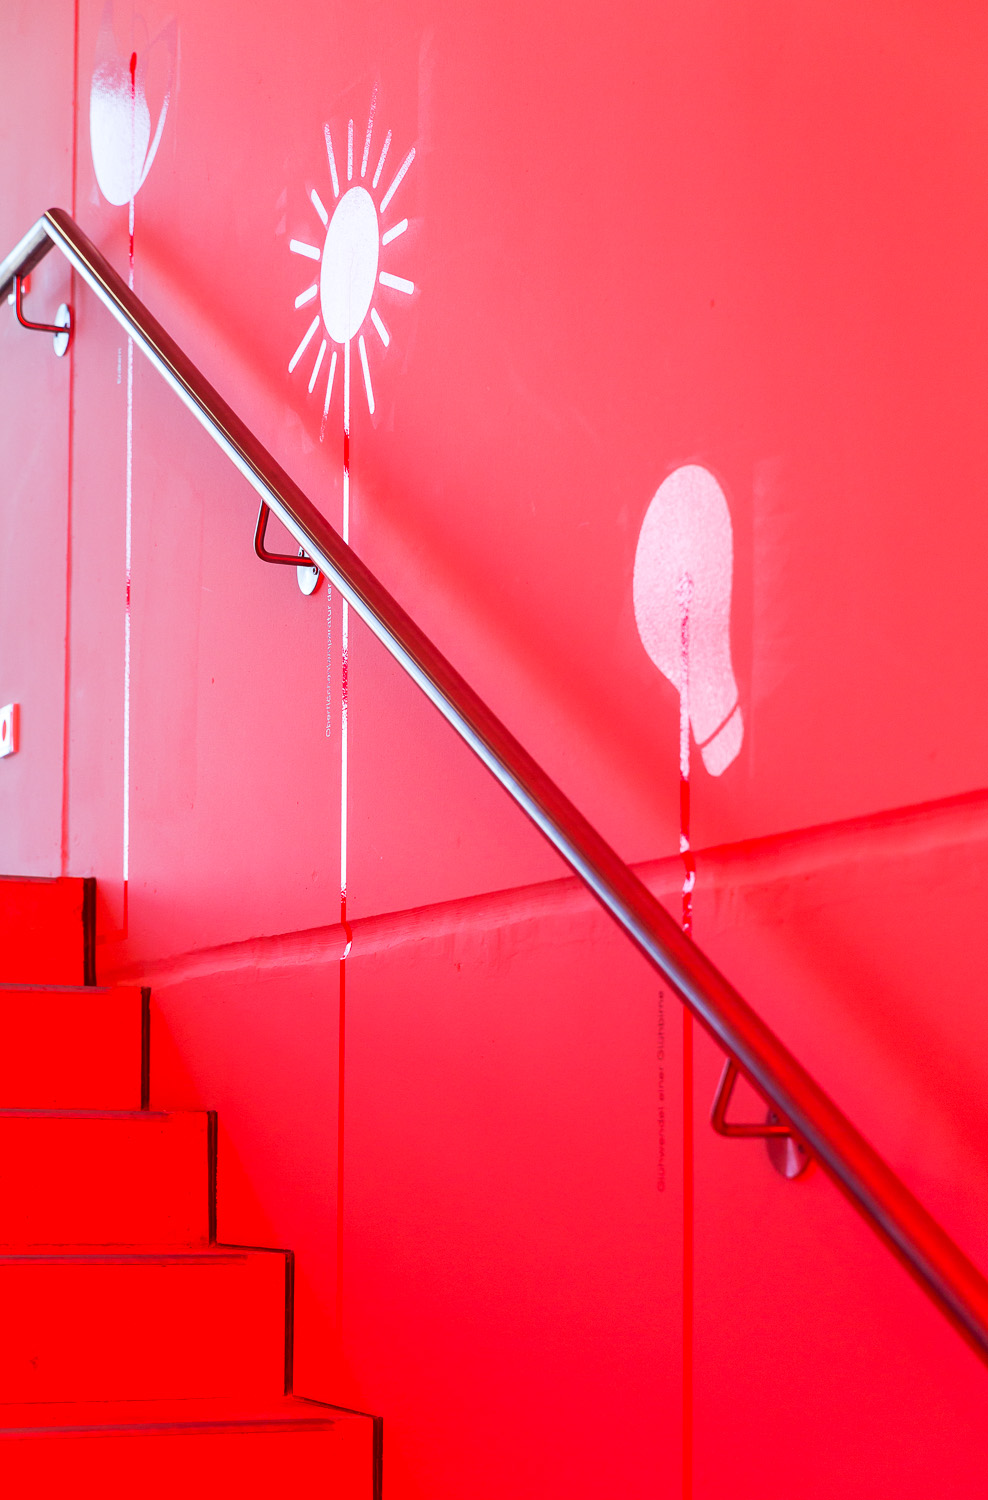 Red staircase with white graphics on the wall